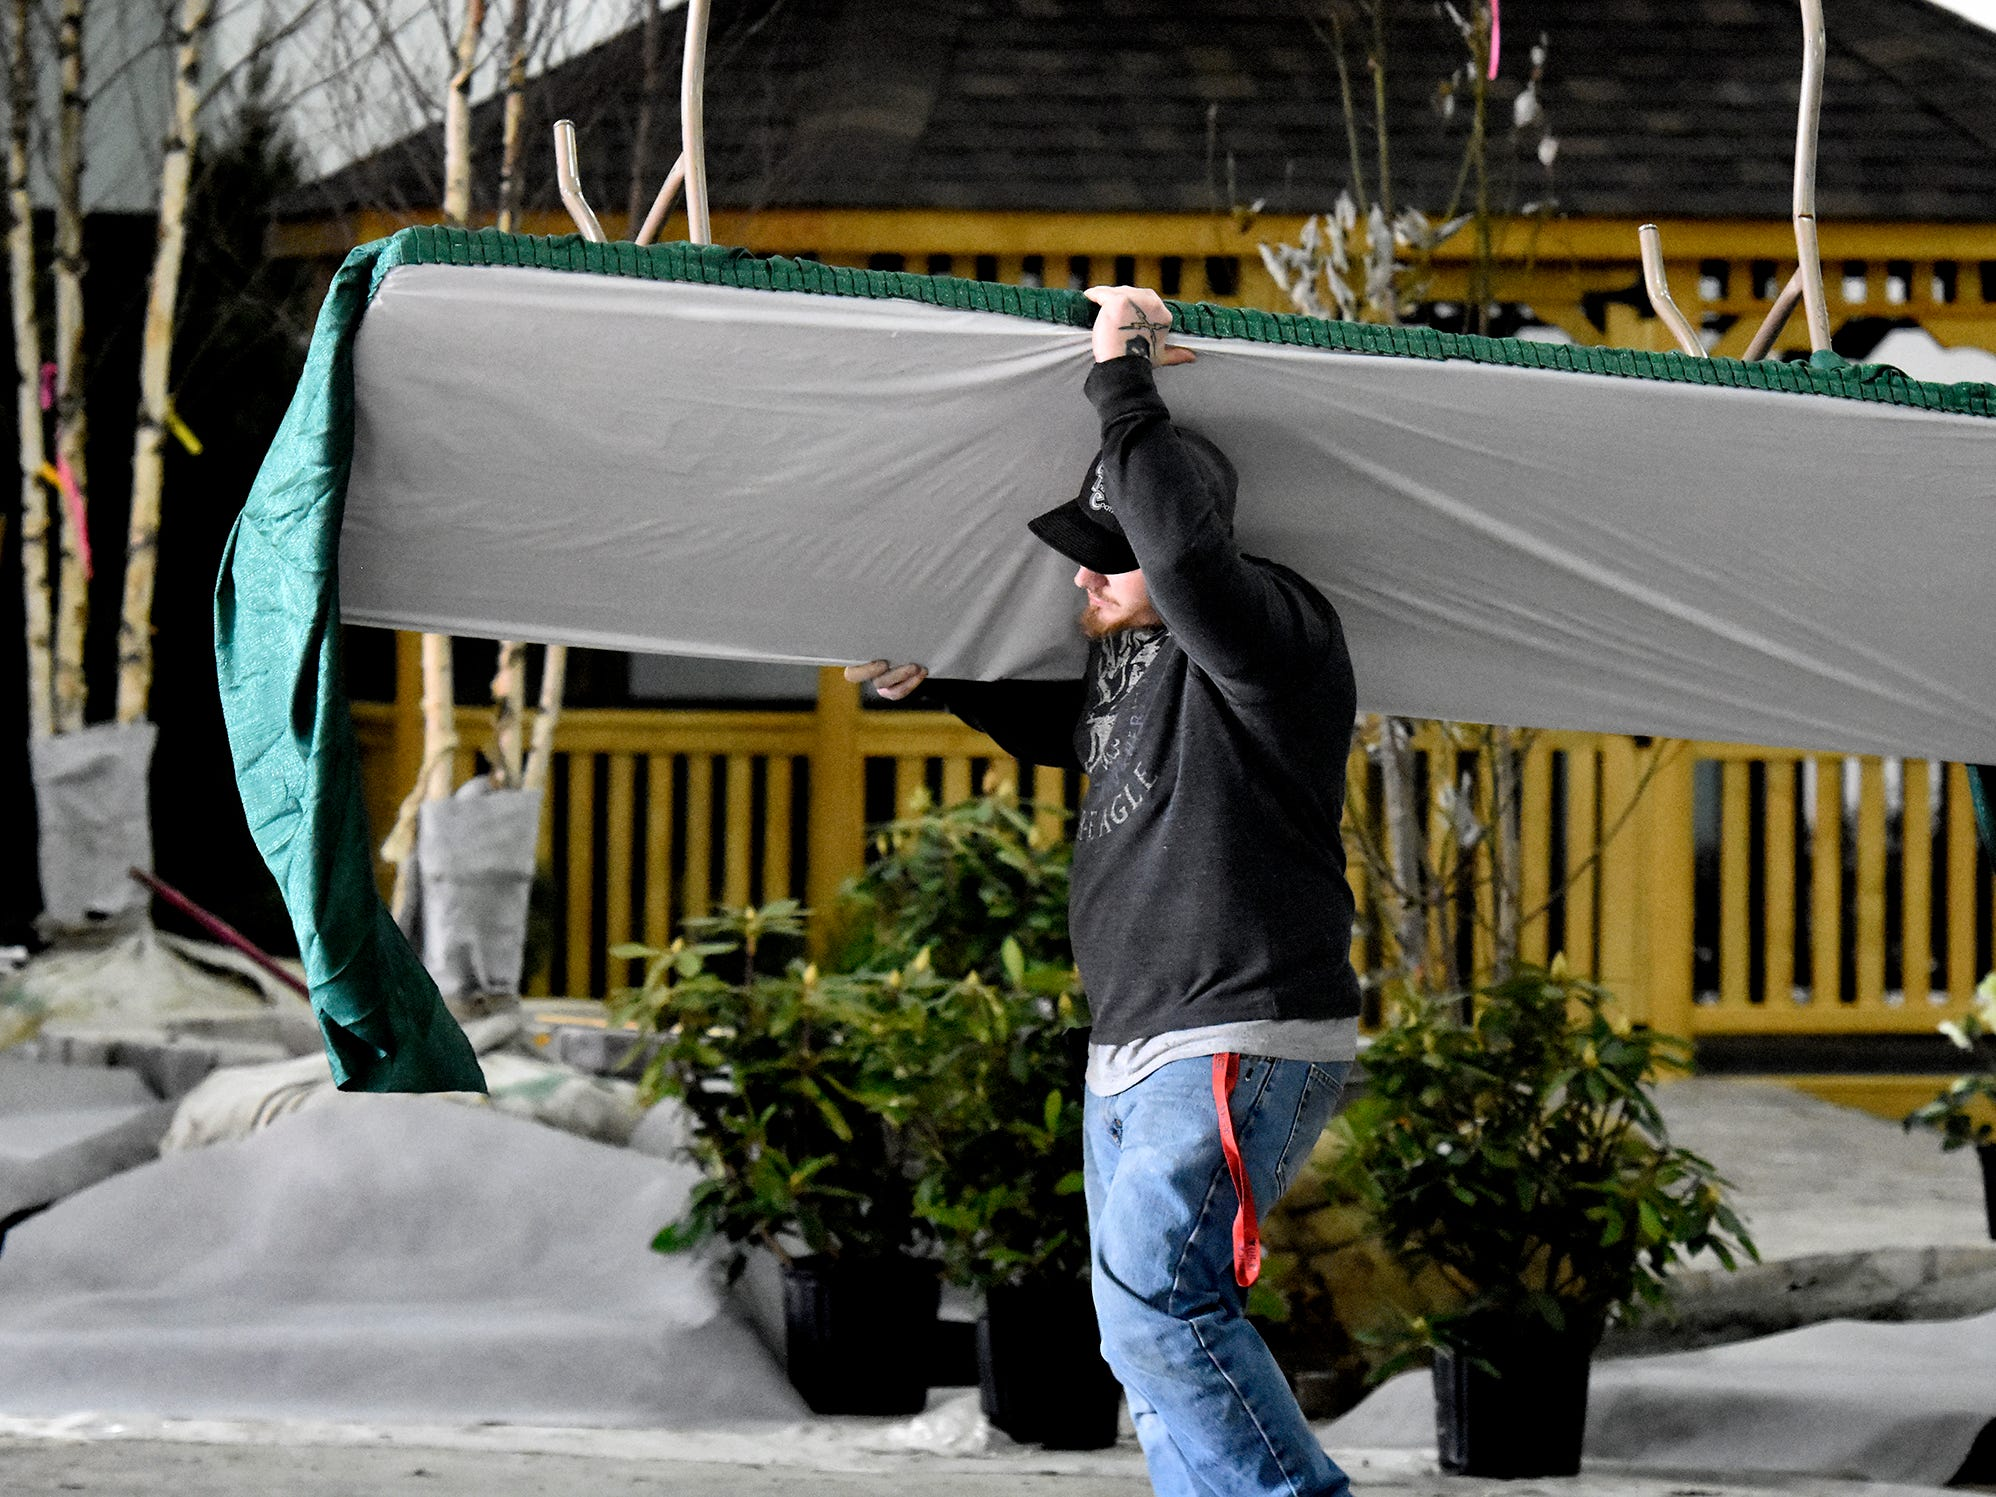 """Workers prepare for the PA Garden Show of York at Memorial Hall at the York Expo Center Wednesday, Feb. 27, 2019. The show, themed """"Flowers on Parade,"""" runs Friday and Saturday 10 a.m. to 8 p.m., and Sunday 10 a.m. to 5 p.m. Admission for adults is $10. Children are free with multi-day passes and and senior discounts offered. Bill Kalina photo"""